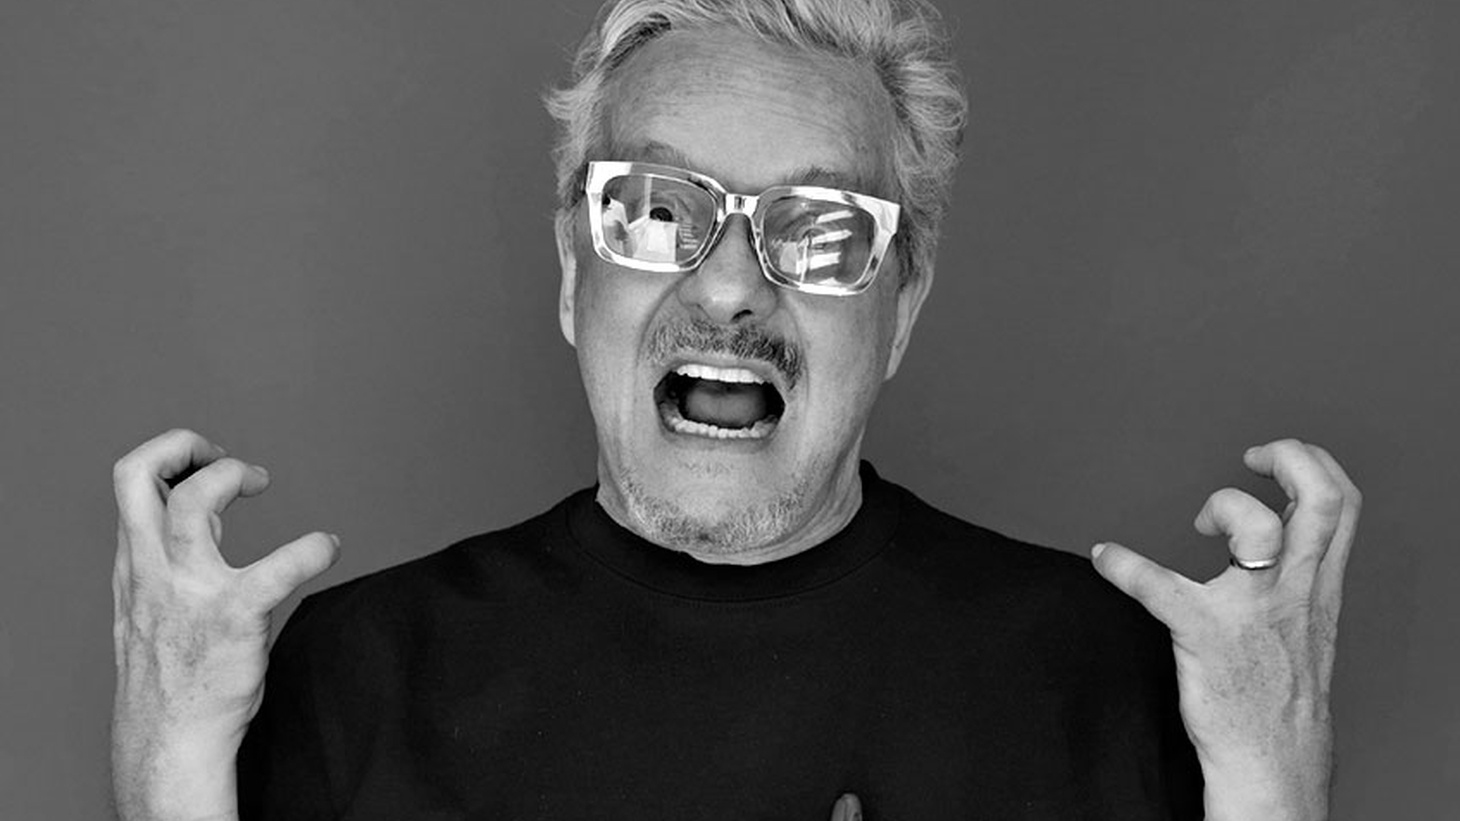 Mark Mothersbaugh is best known as the singer for new wave legends Devo, and has expanded his creative output through film scoring, visual arts and even designing his own line of eyewear. In his Guest DJ set, he talks about discovering The Beatles, how Captain Beefheart rocked his world and the lessons he learned about subversion from an unlikely source.